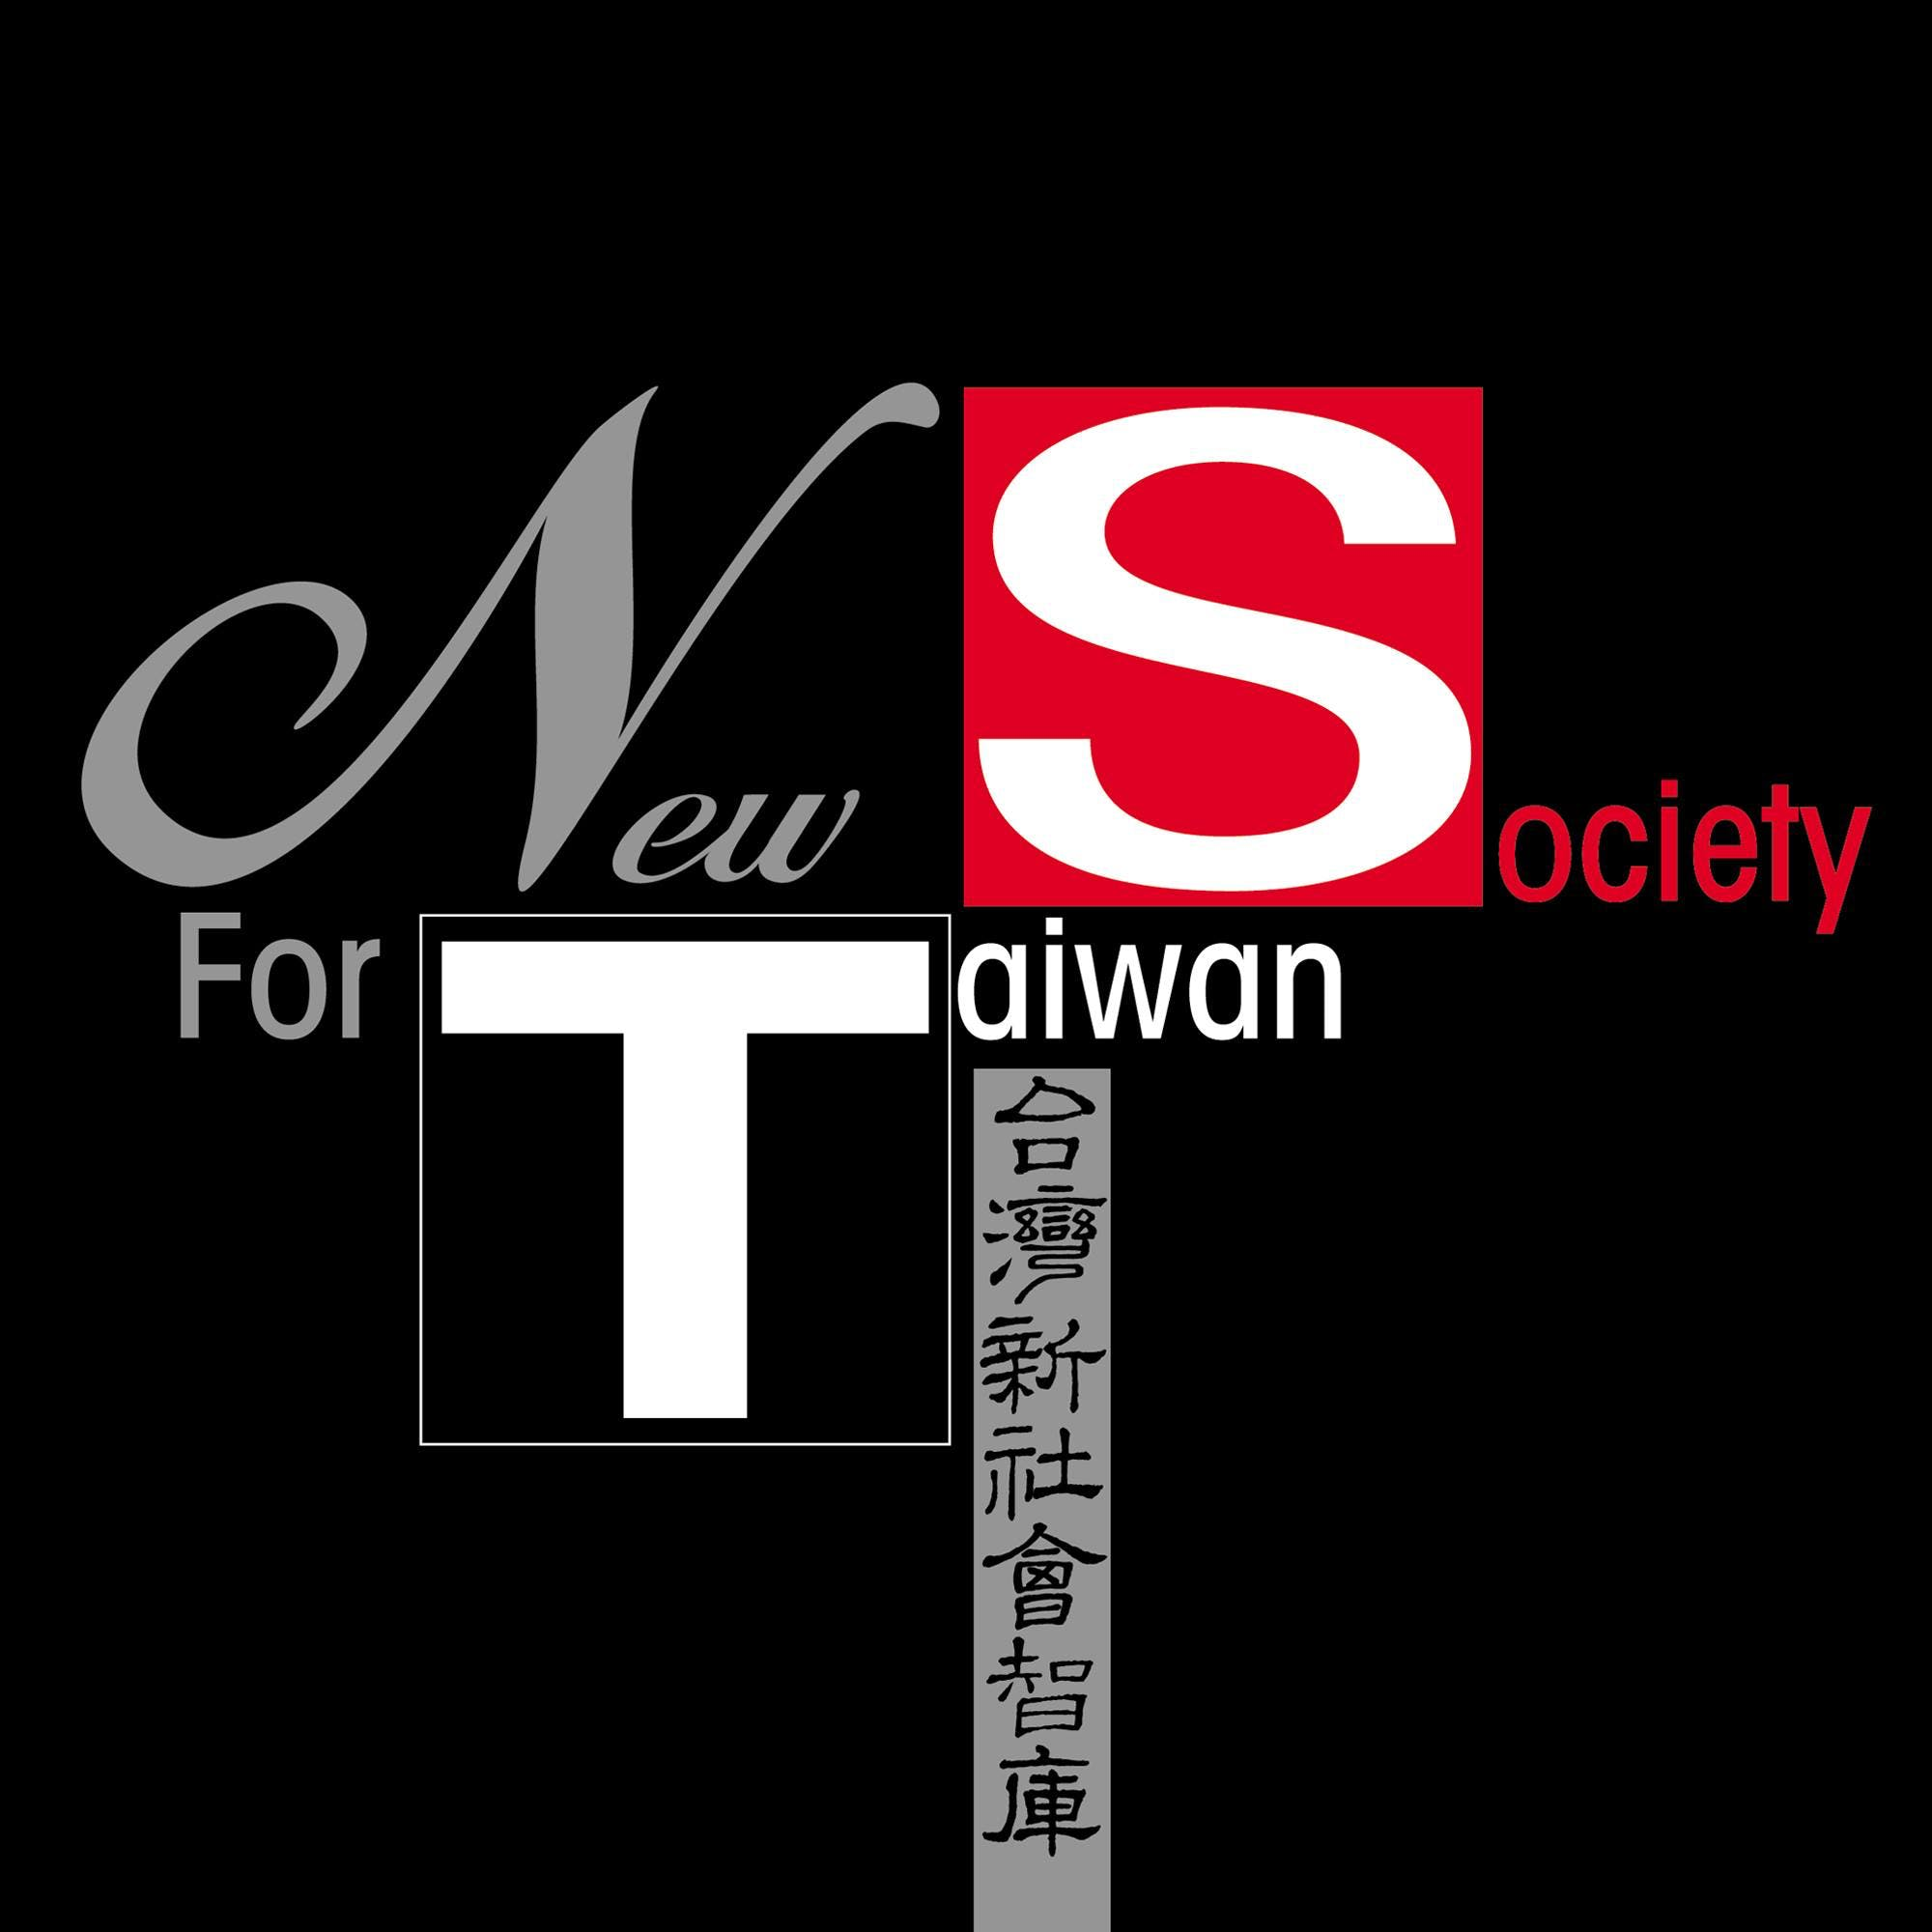 New Society For Taiwan